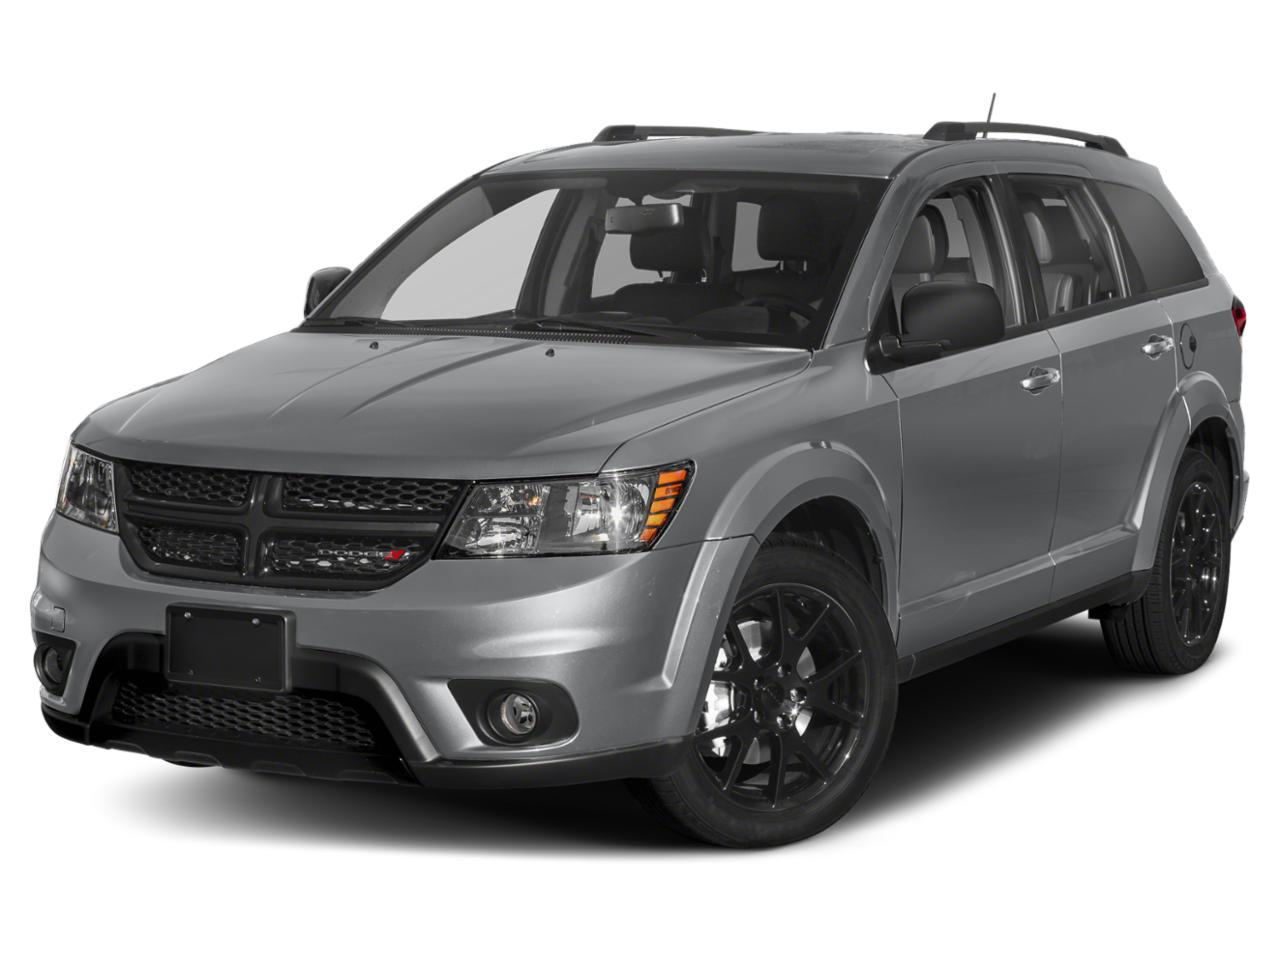 2019 Dodge Journey Vehicle Photo in Joliet, IL 60435